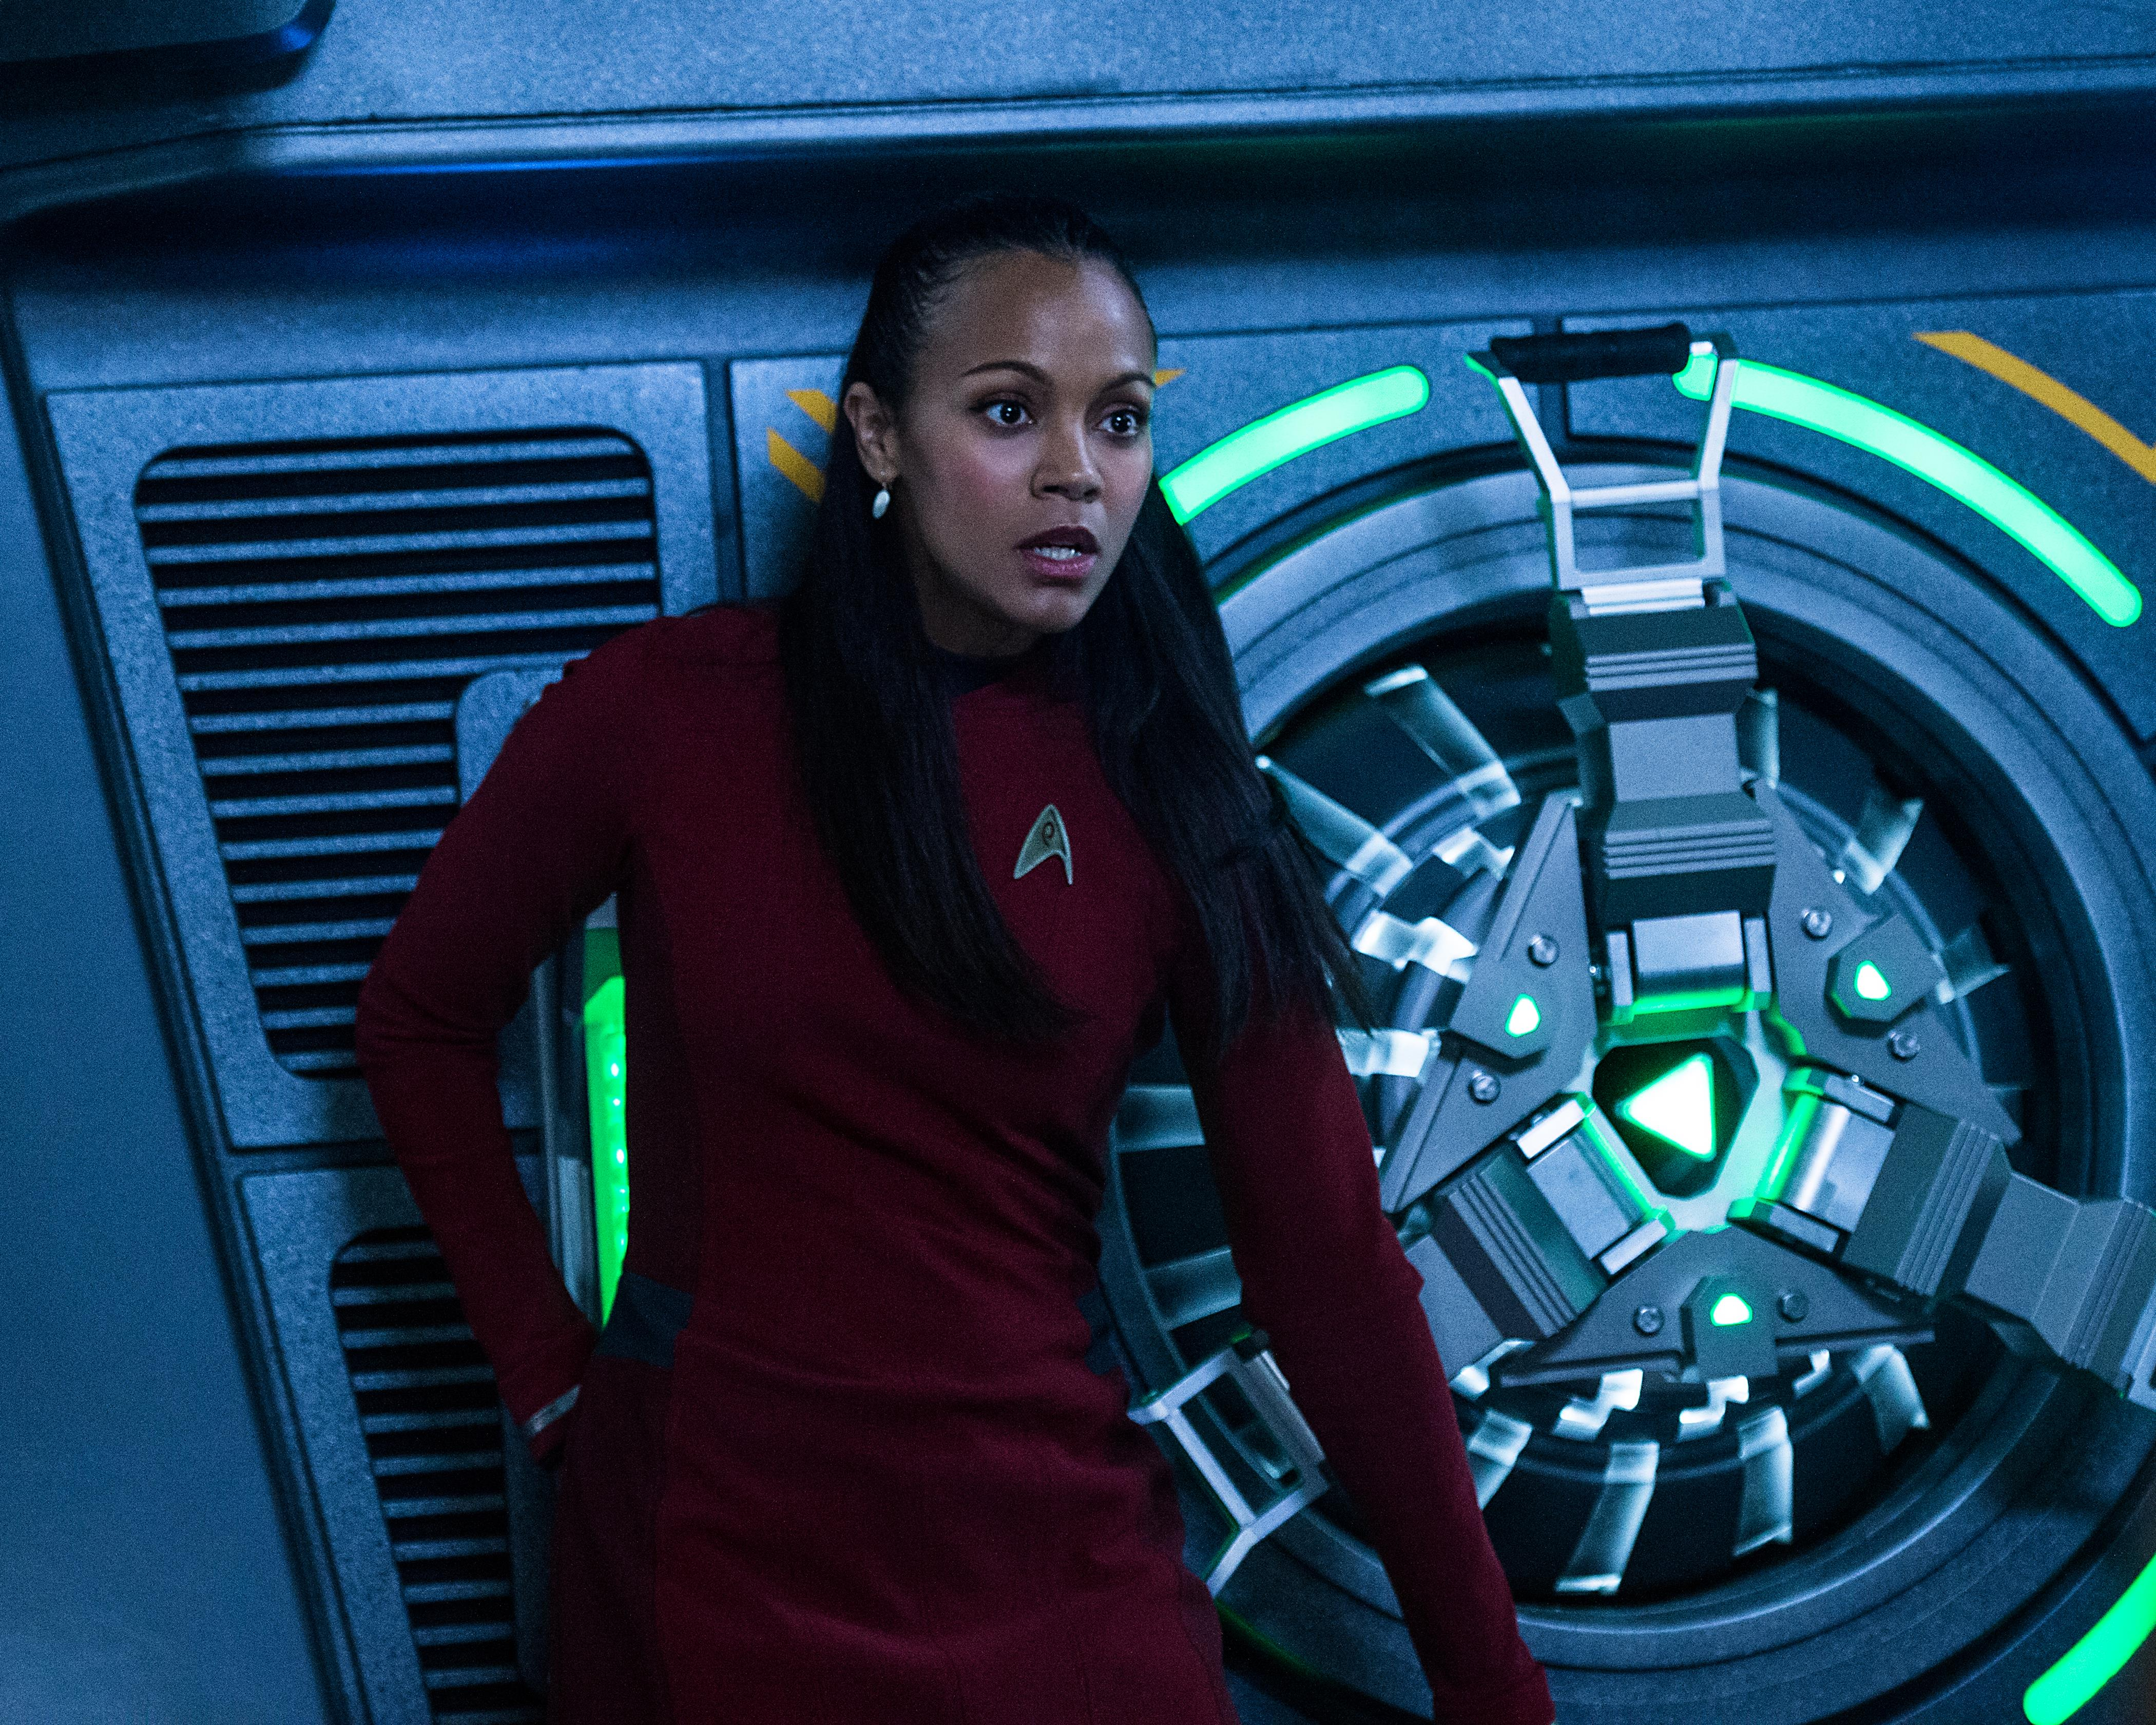 Star Trek Beyond Wallpapers, Pictures, Images